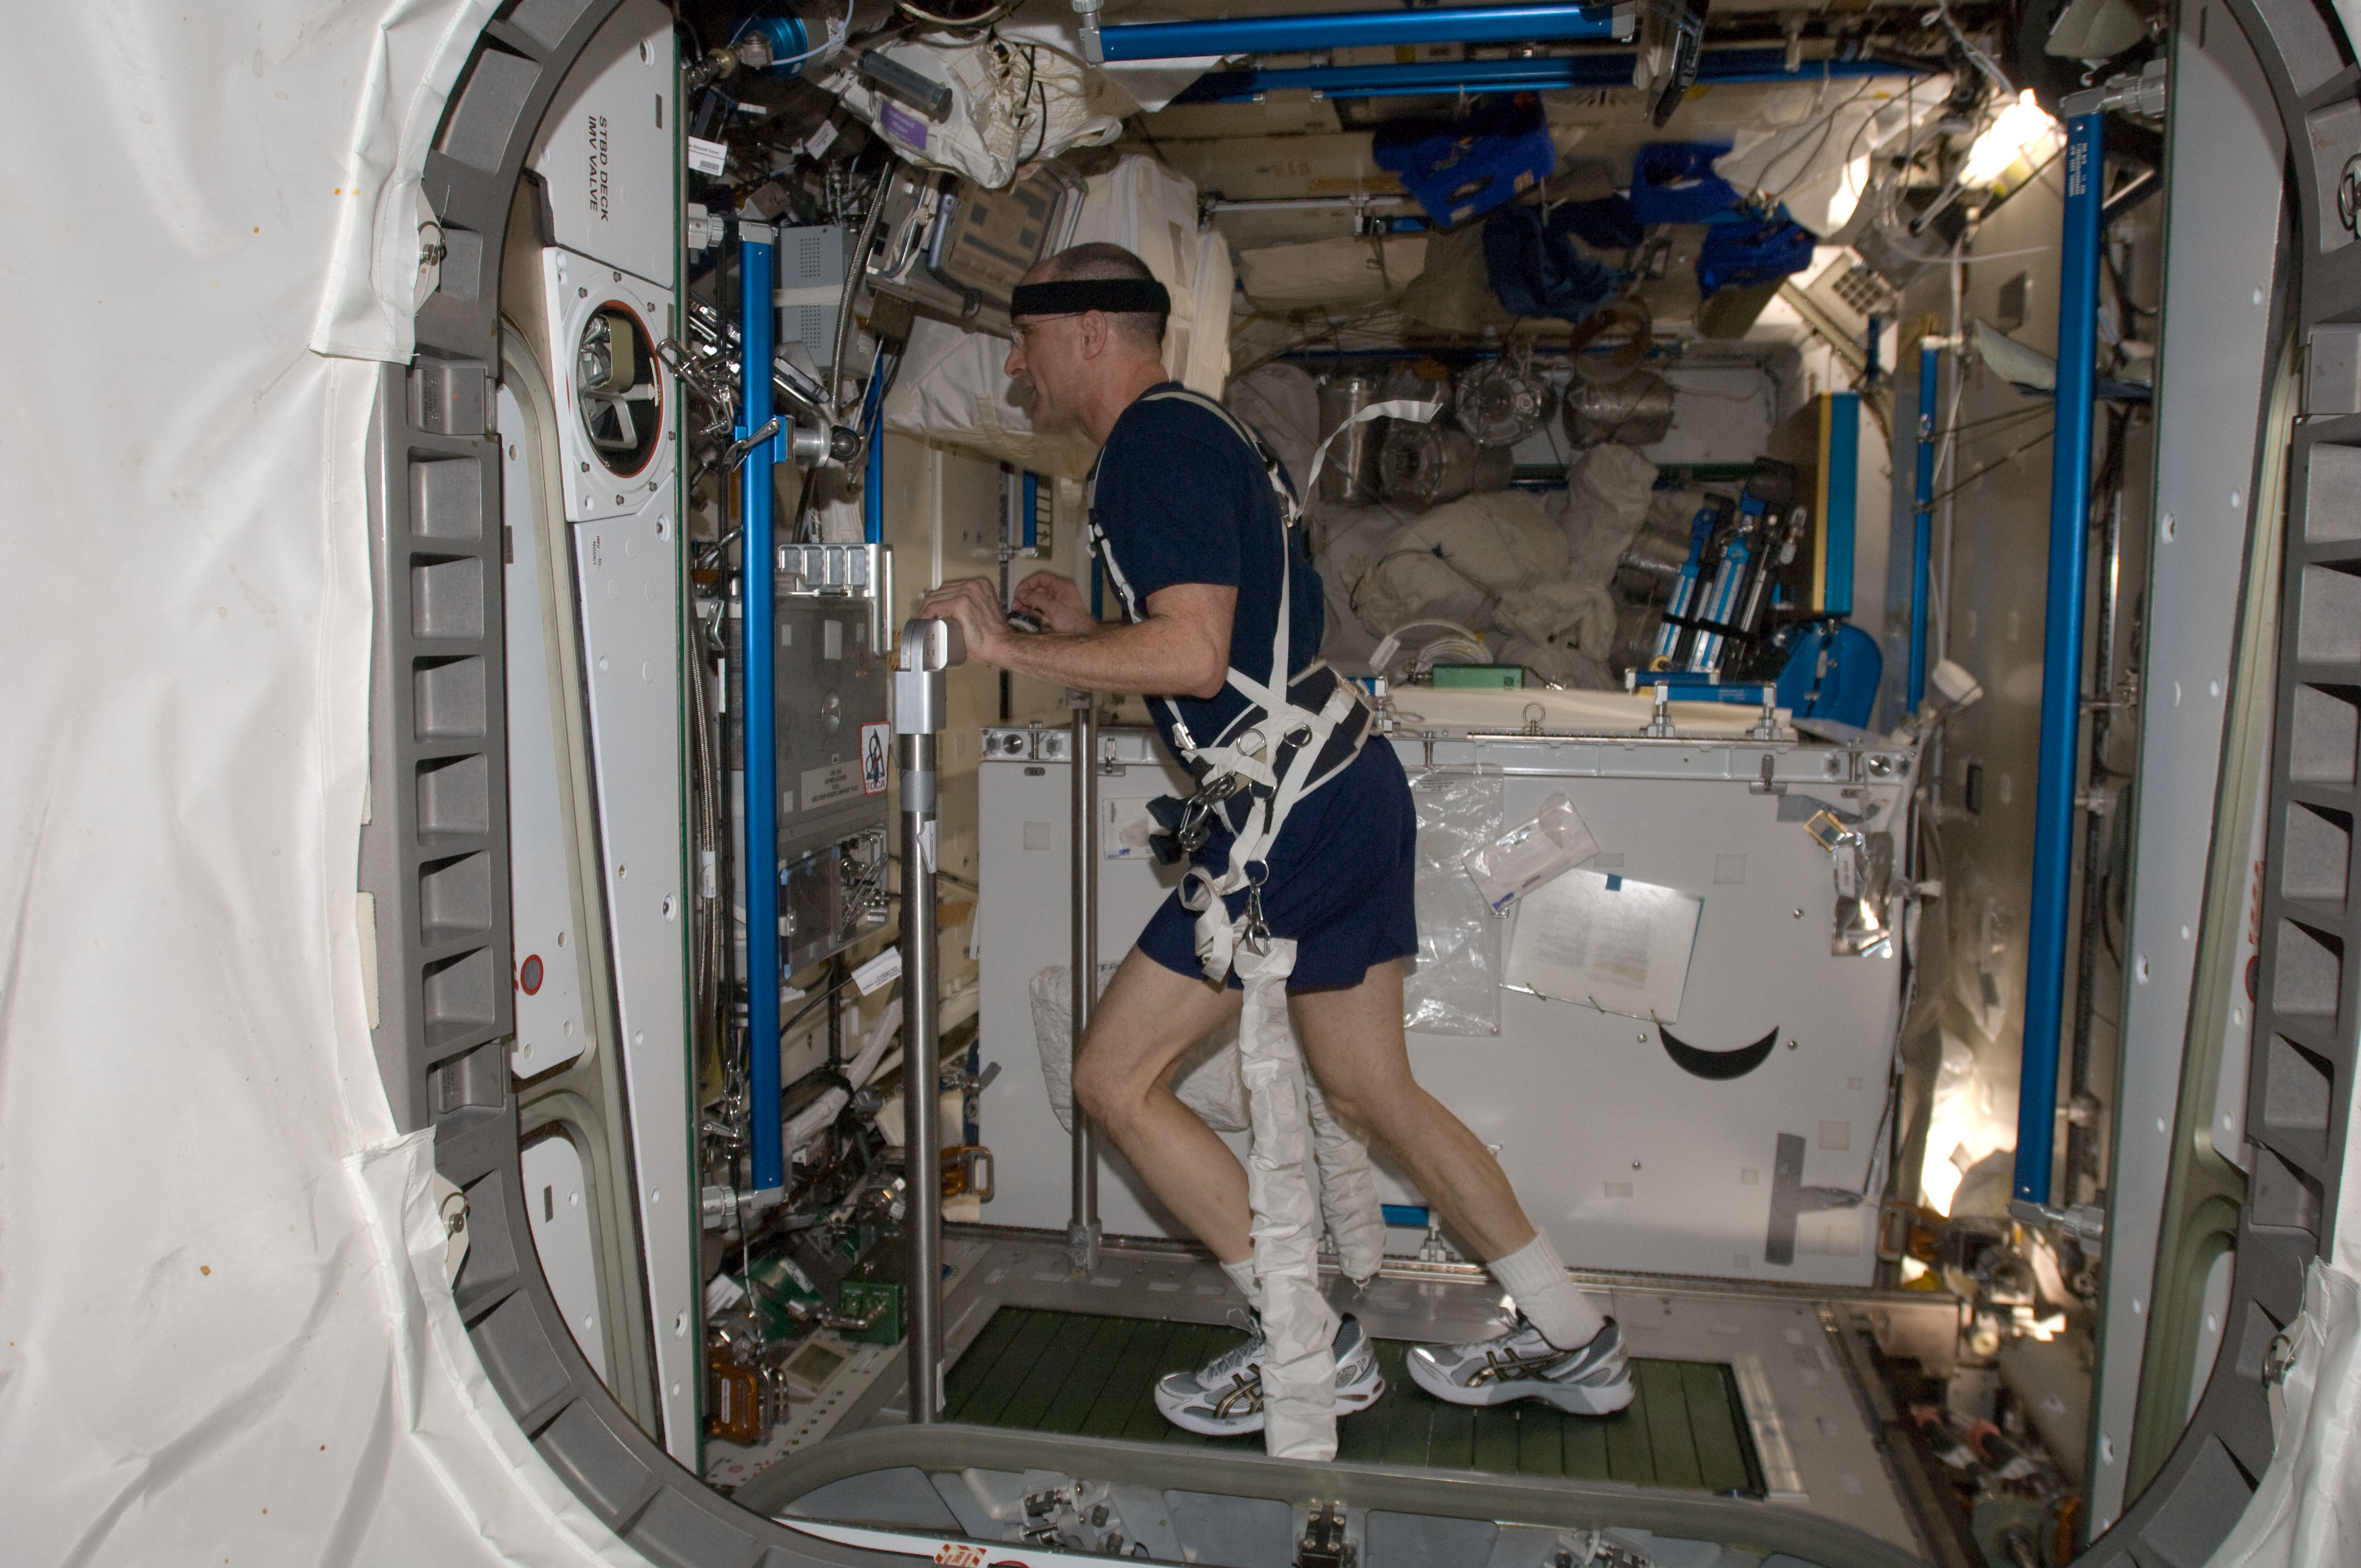 Gallery: Space Station's Expedition 30 Mission